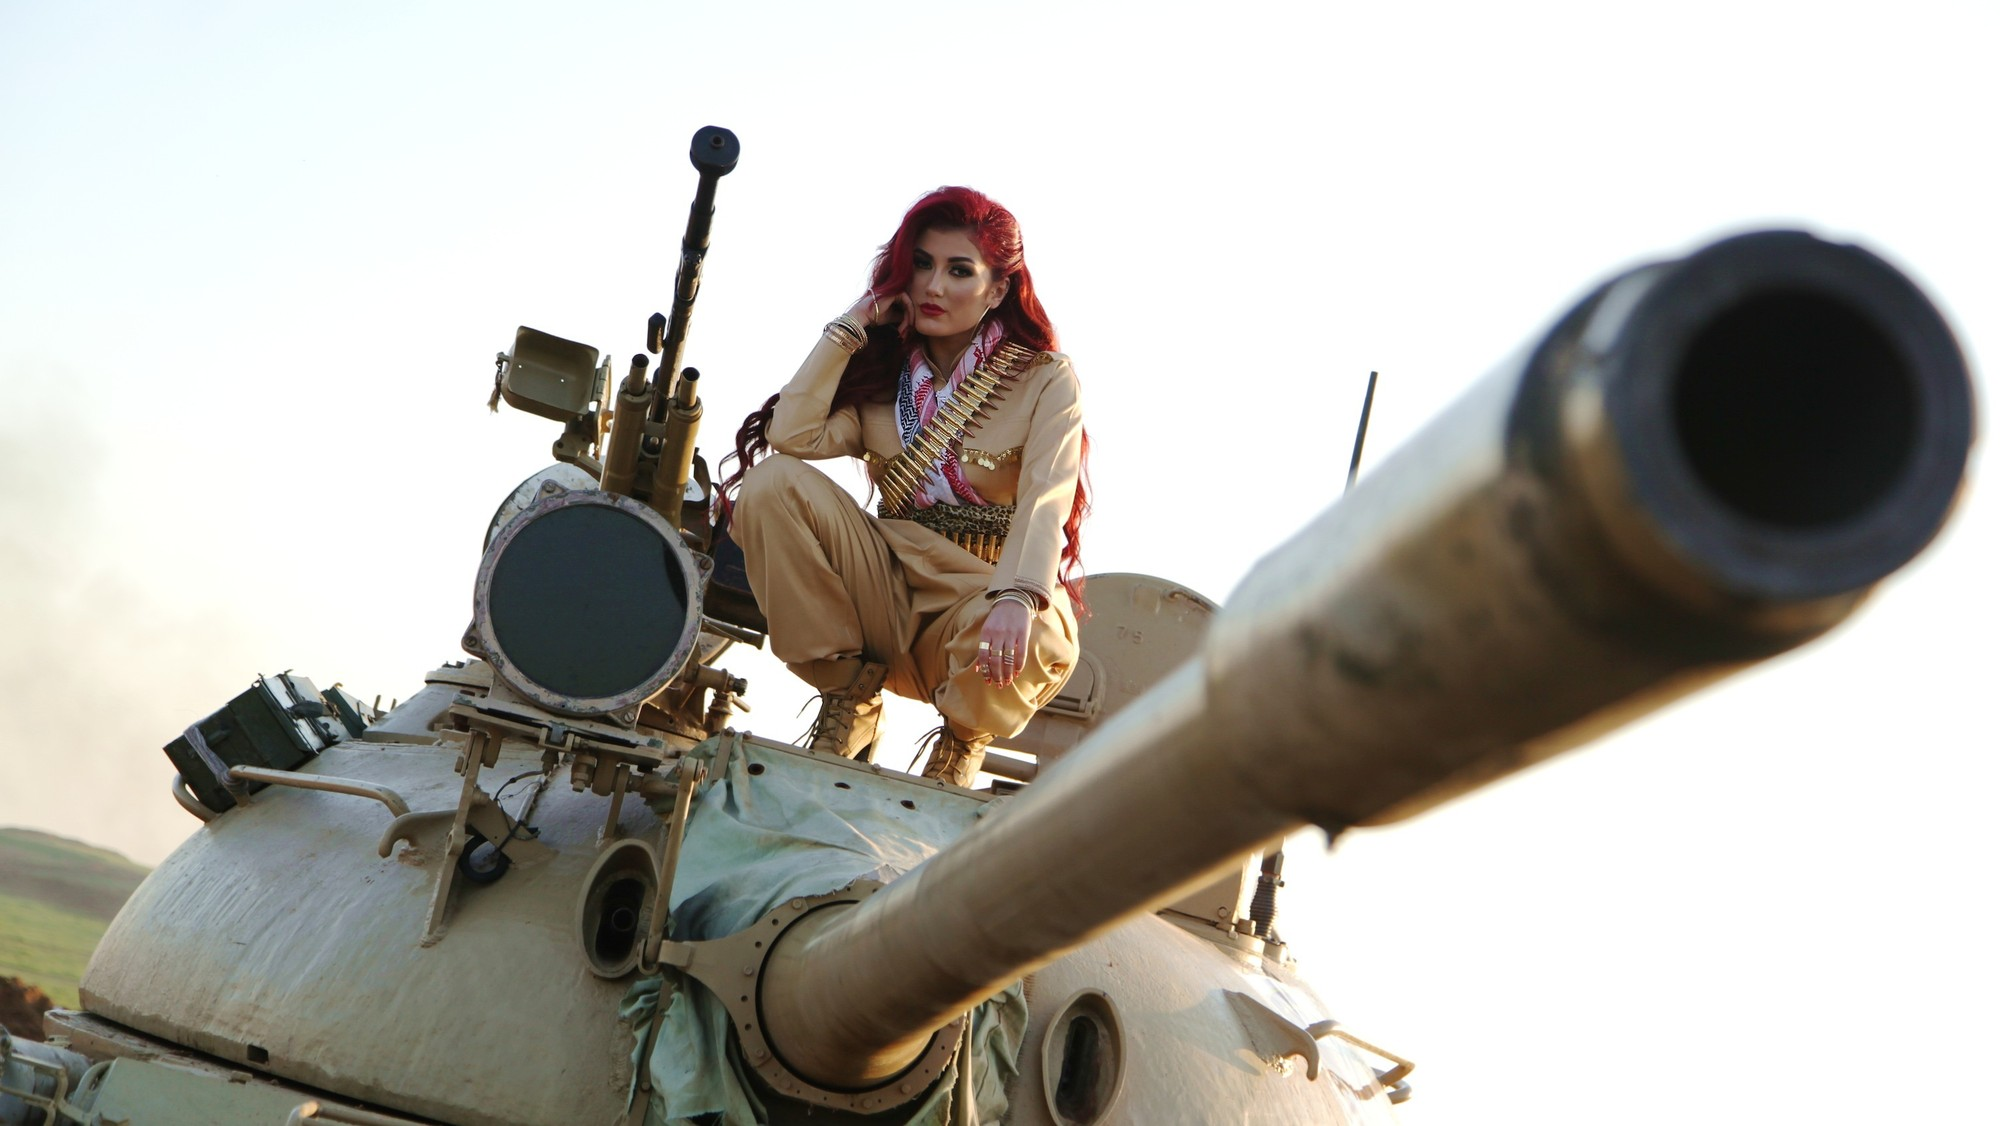 This Kurdish Singer Is Fighting ISIS with Pop Songs - VICE